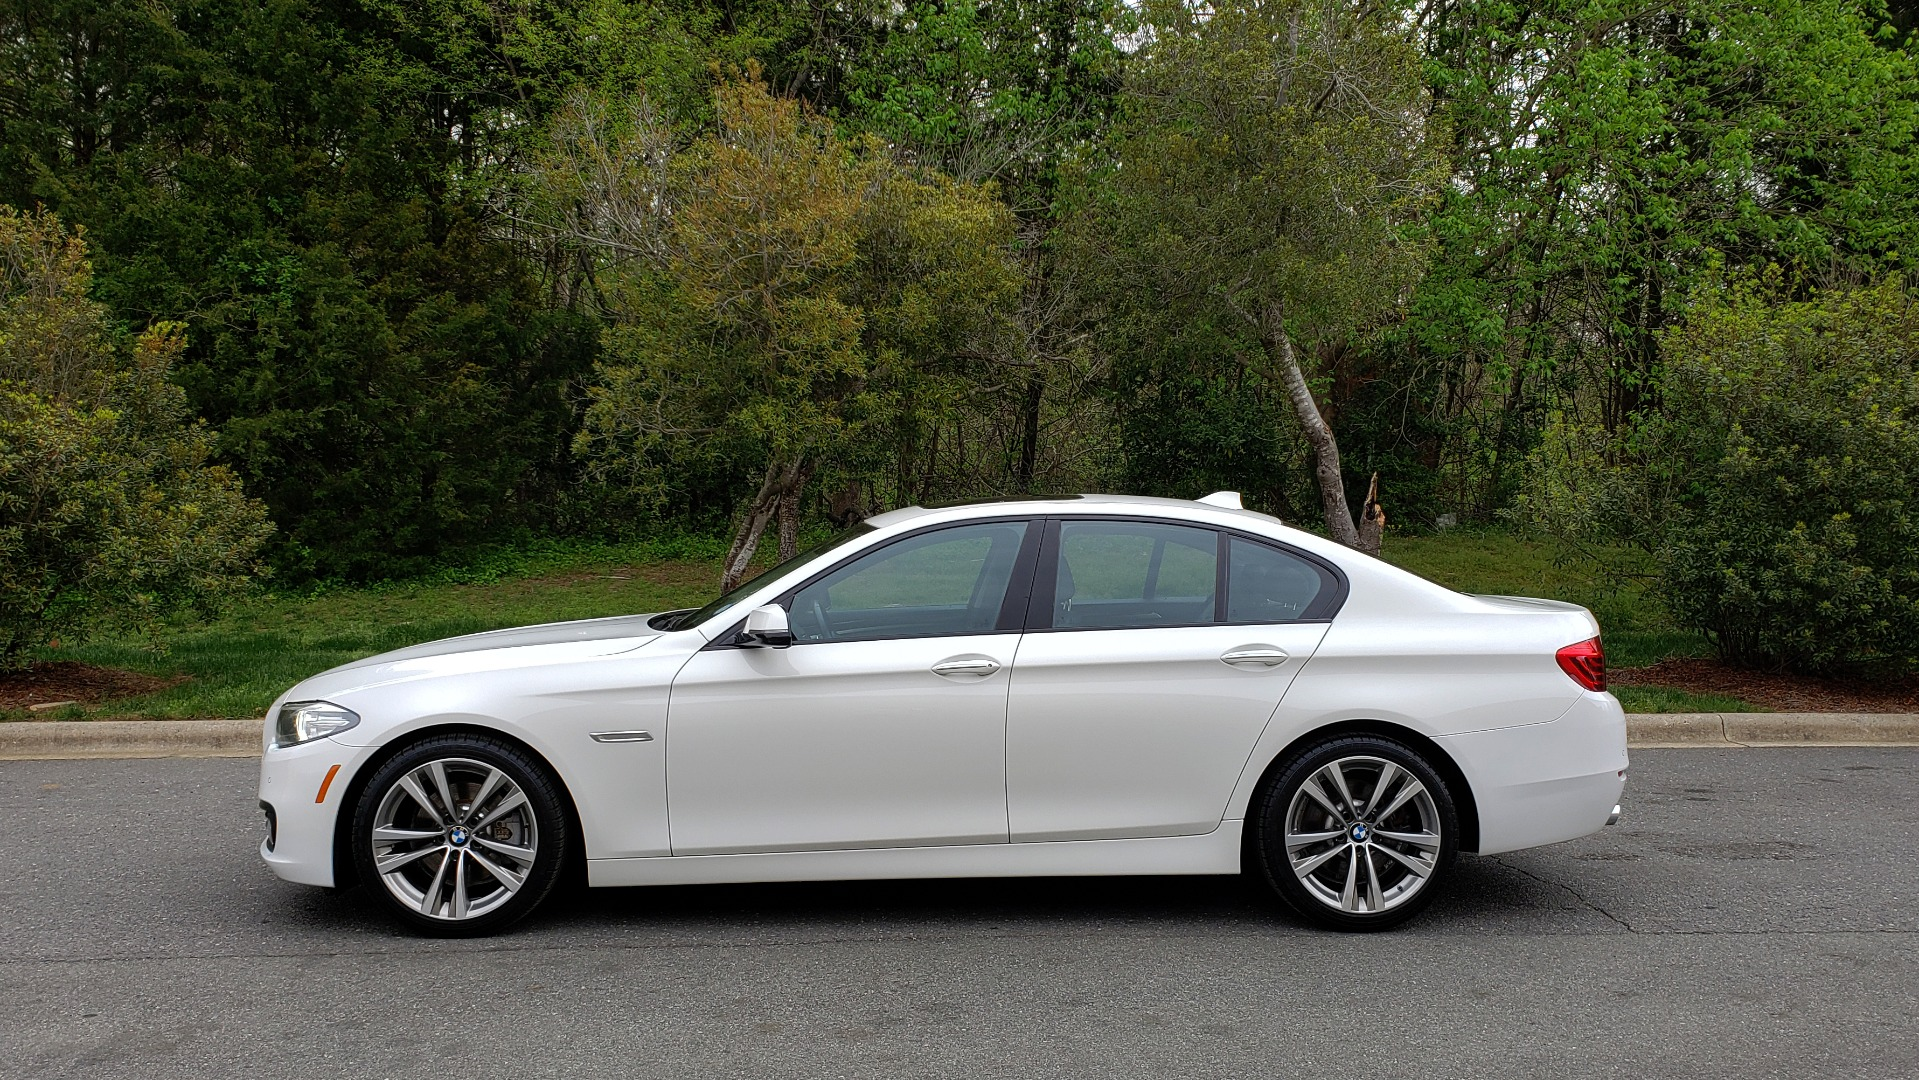 Used 2016 BMW 5 SERIES 528I XDRIVE SPECIAL EDITION / NAV / SUNROOF /HTD STS / REARVIEW for sale Sold at Formula Imports in Charlotte NC 28227 2